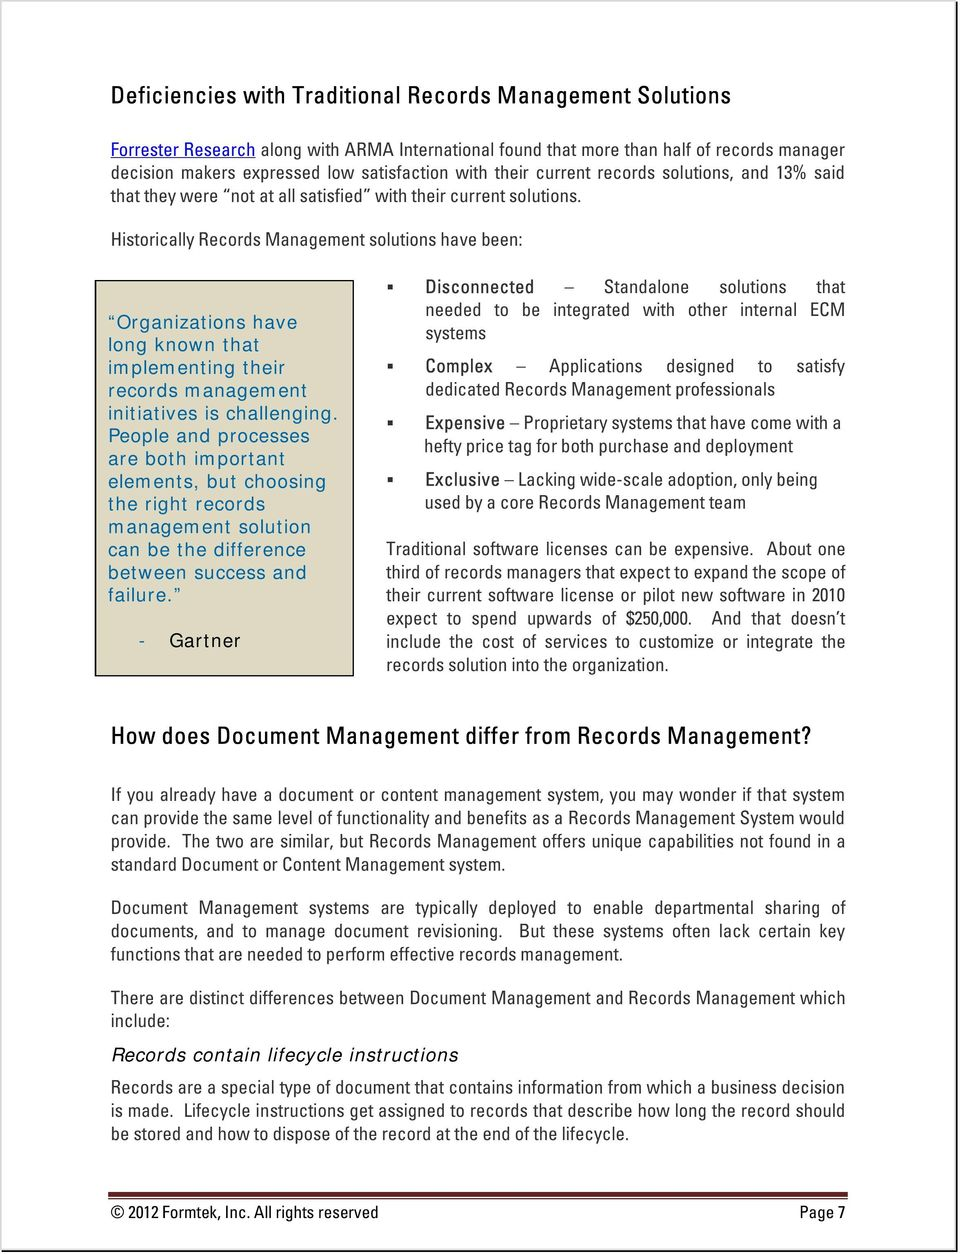 Historically Records Management solutions have been: Organizations have long known that implementing their records management initiatives is challenging.